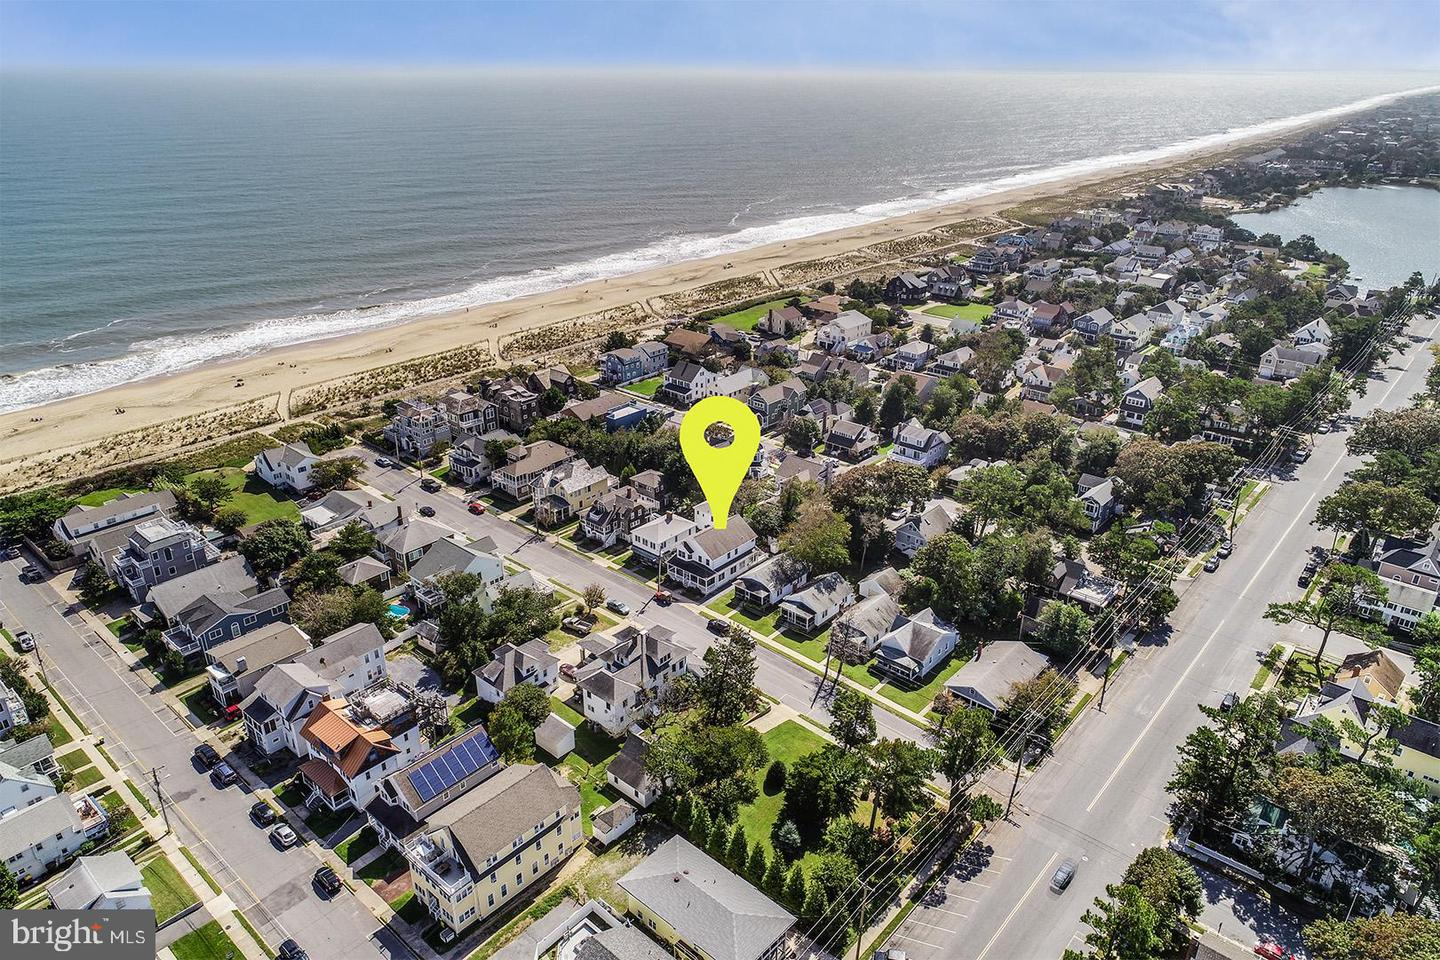 DESU139874-301711161768-2019-05-16-07-32-35 10 New Castle St | Rehoboth Beach, DE Real Estate For Sale | MLS# Desu139874  - Rehoboth Beach Real Estate - Bryce Lingo and Shaun Tull REALTORS, Rehoboth Beach, Delaware